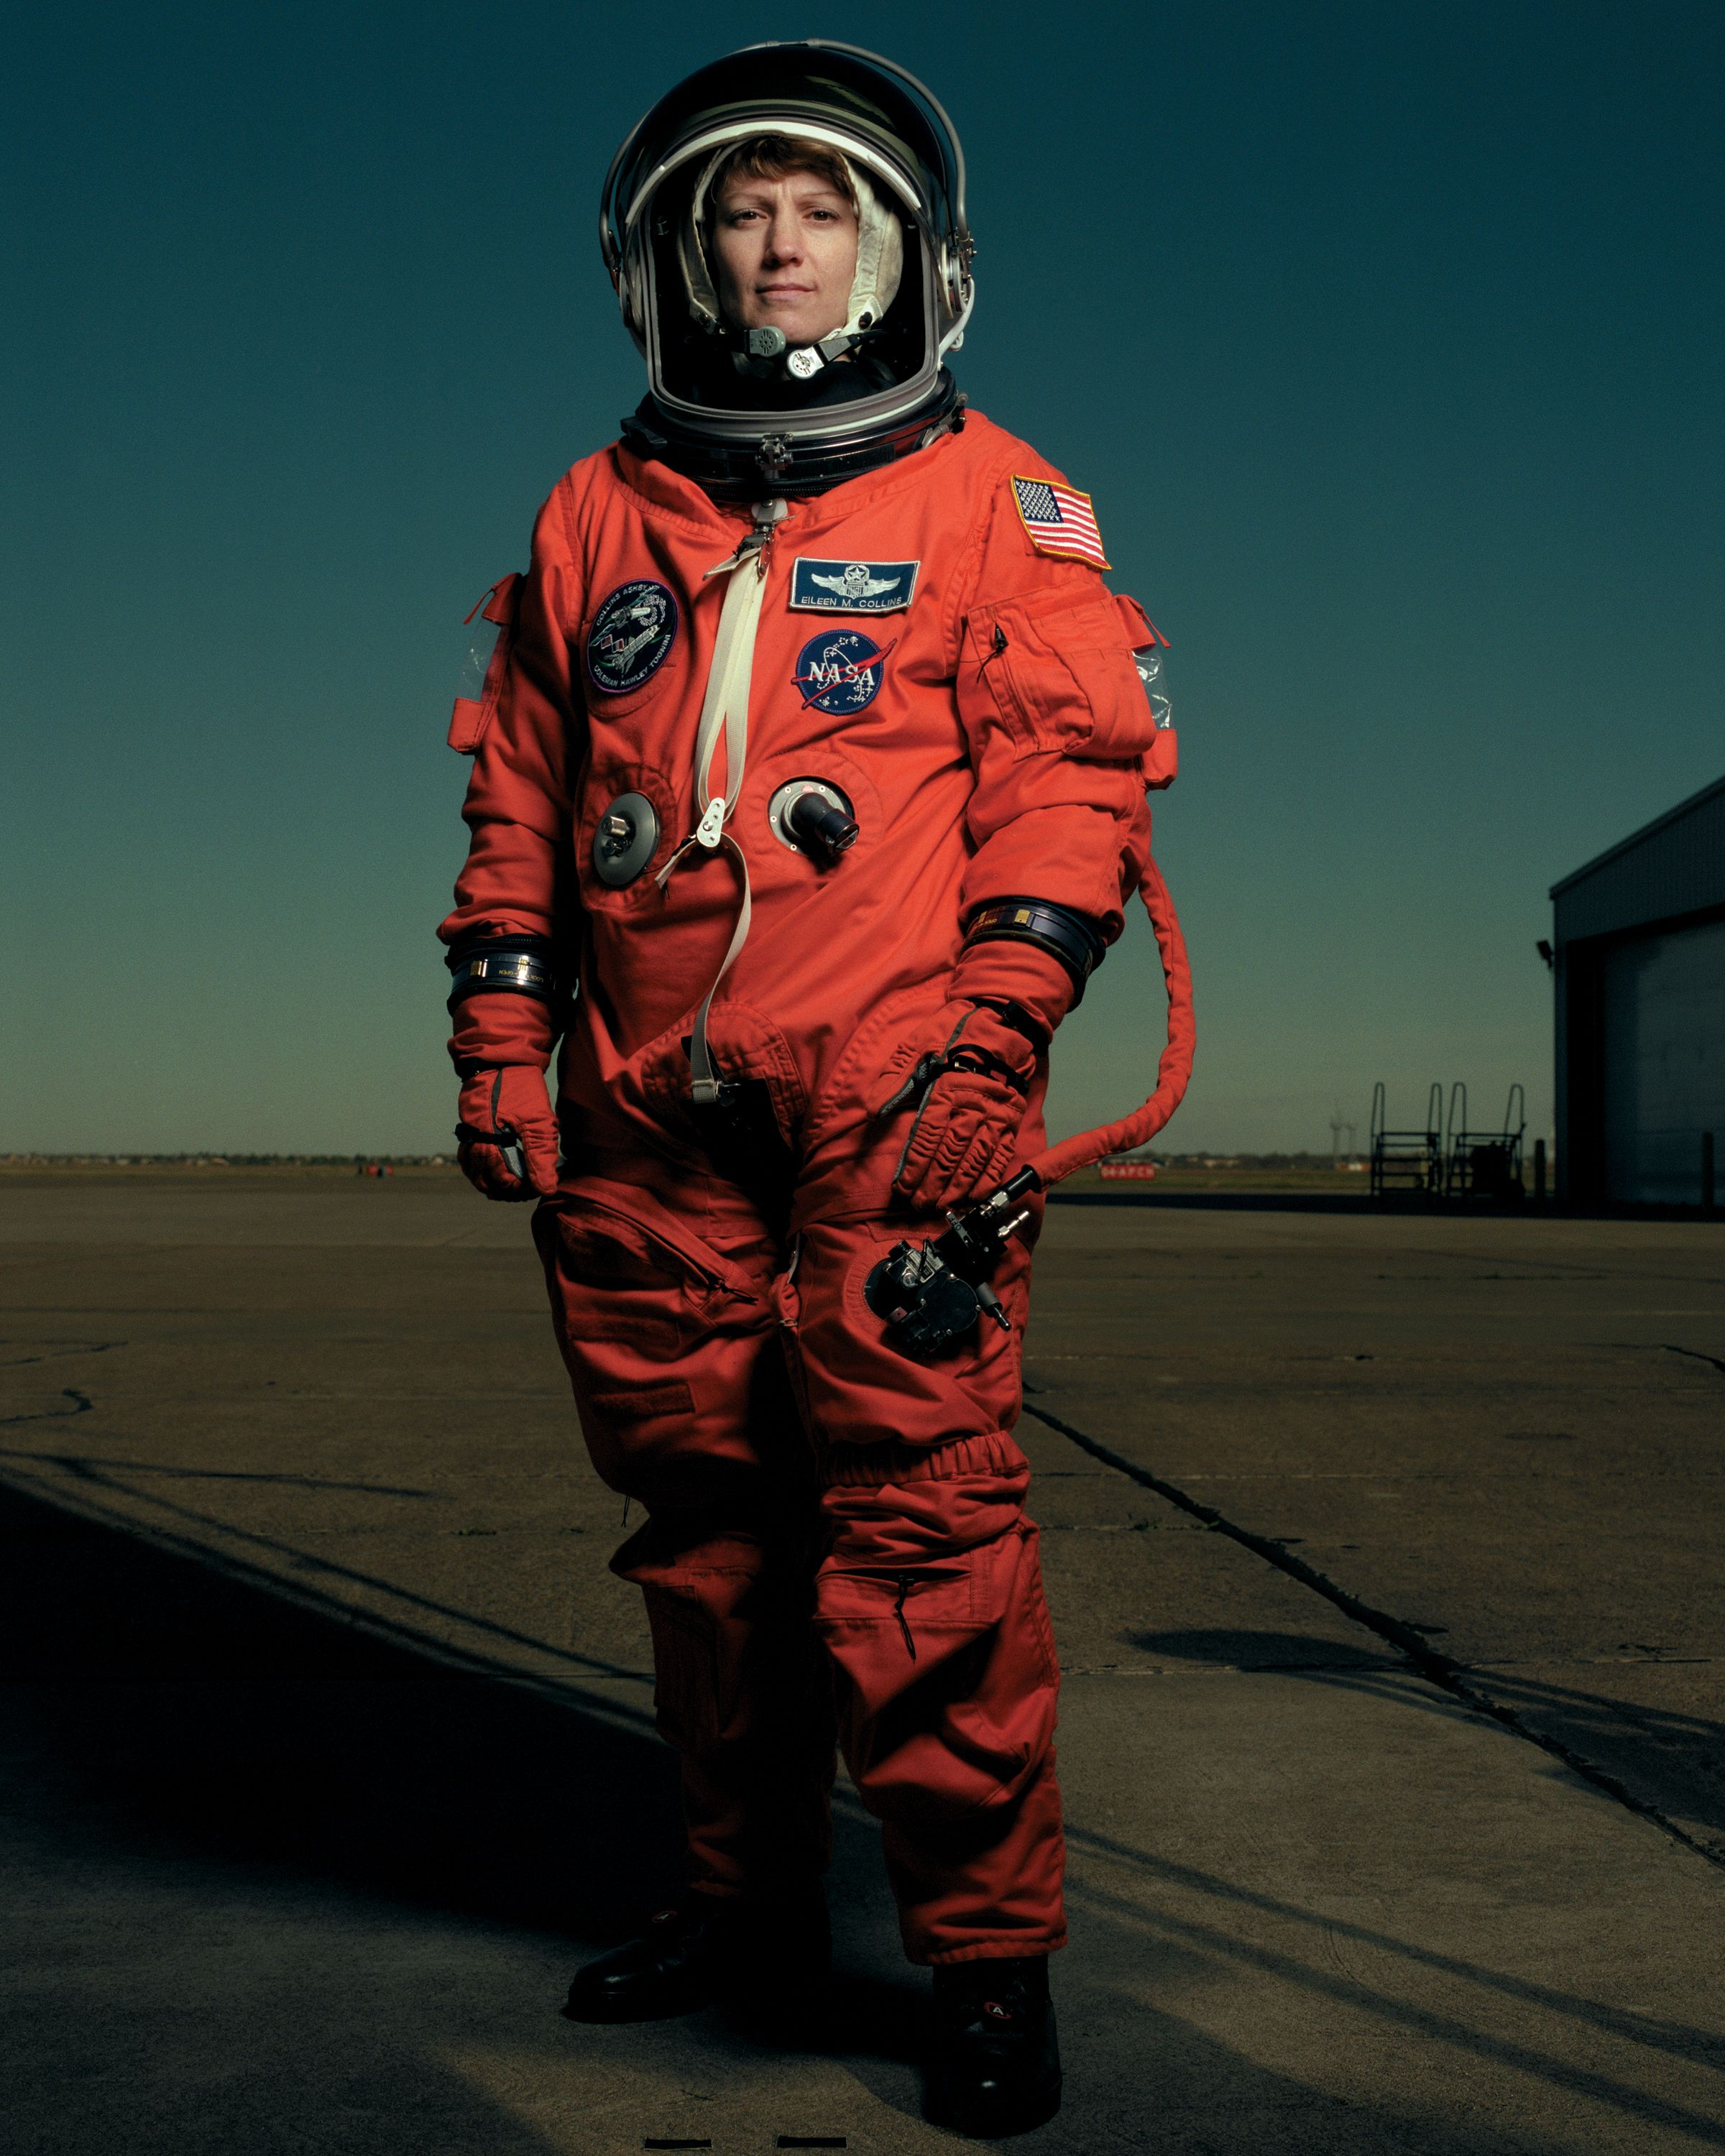 space shuttle astronauts female criminal - photo #35